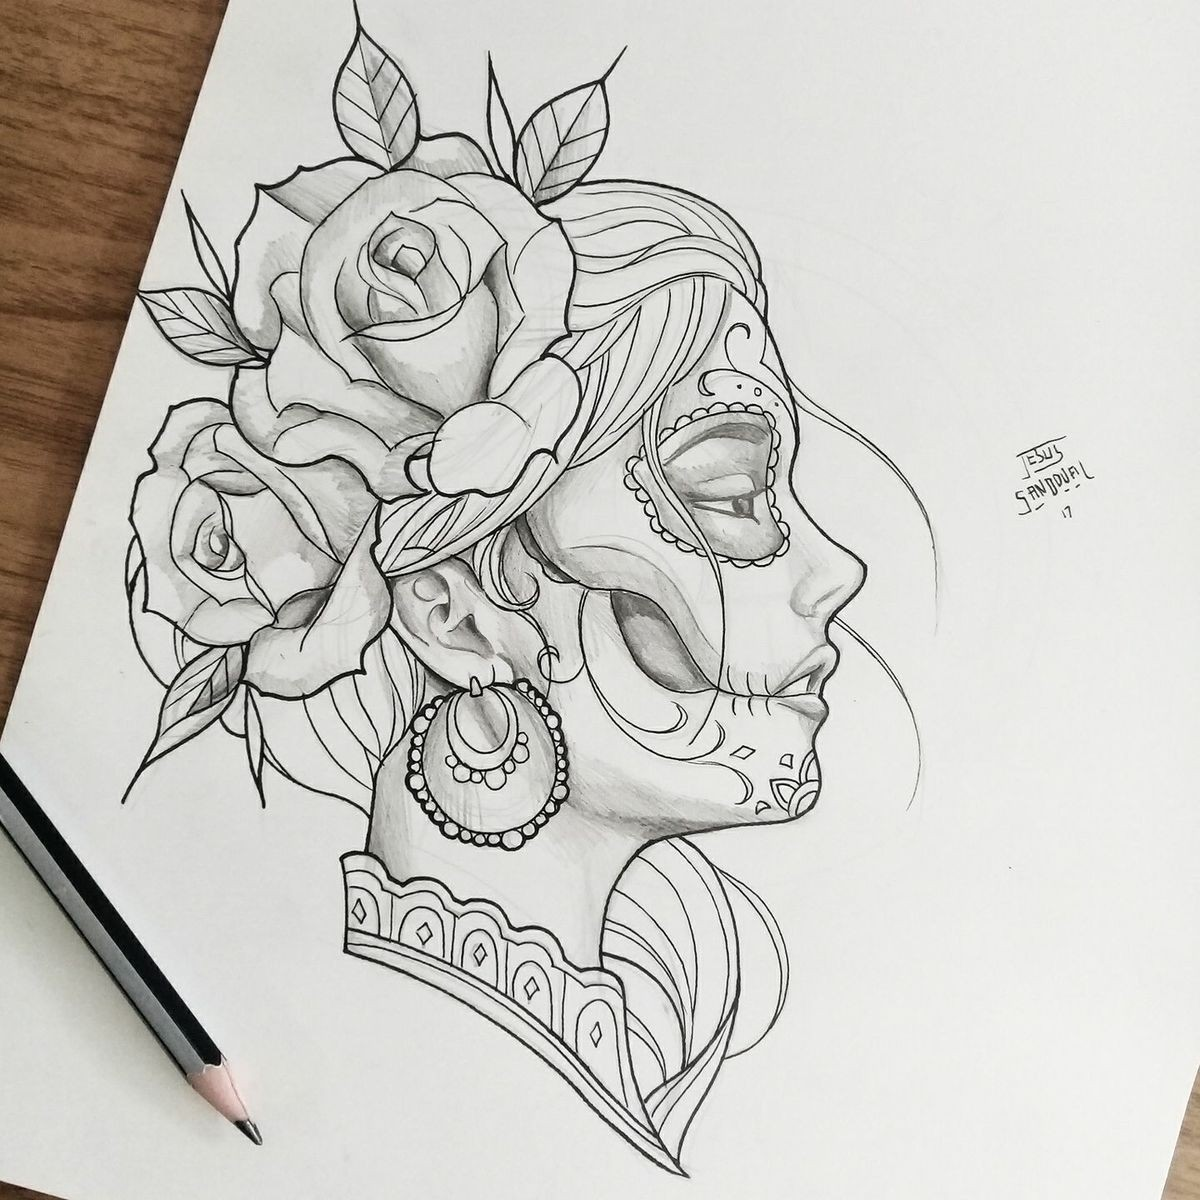 Roses Drawings Easy And Art Image 6958847 On Favim Com